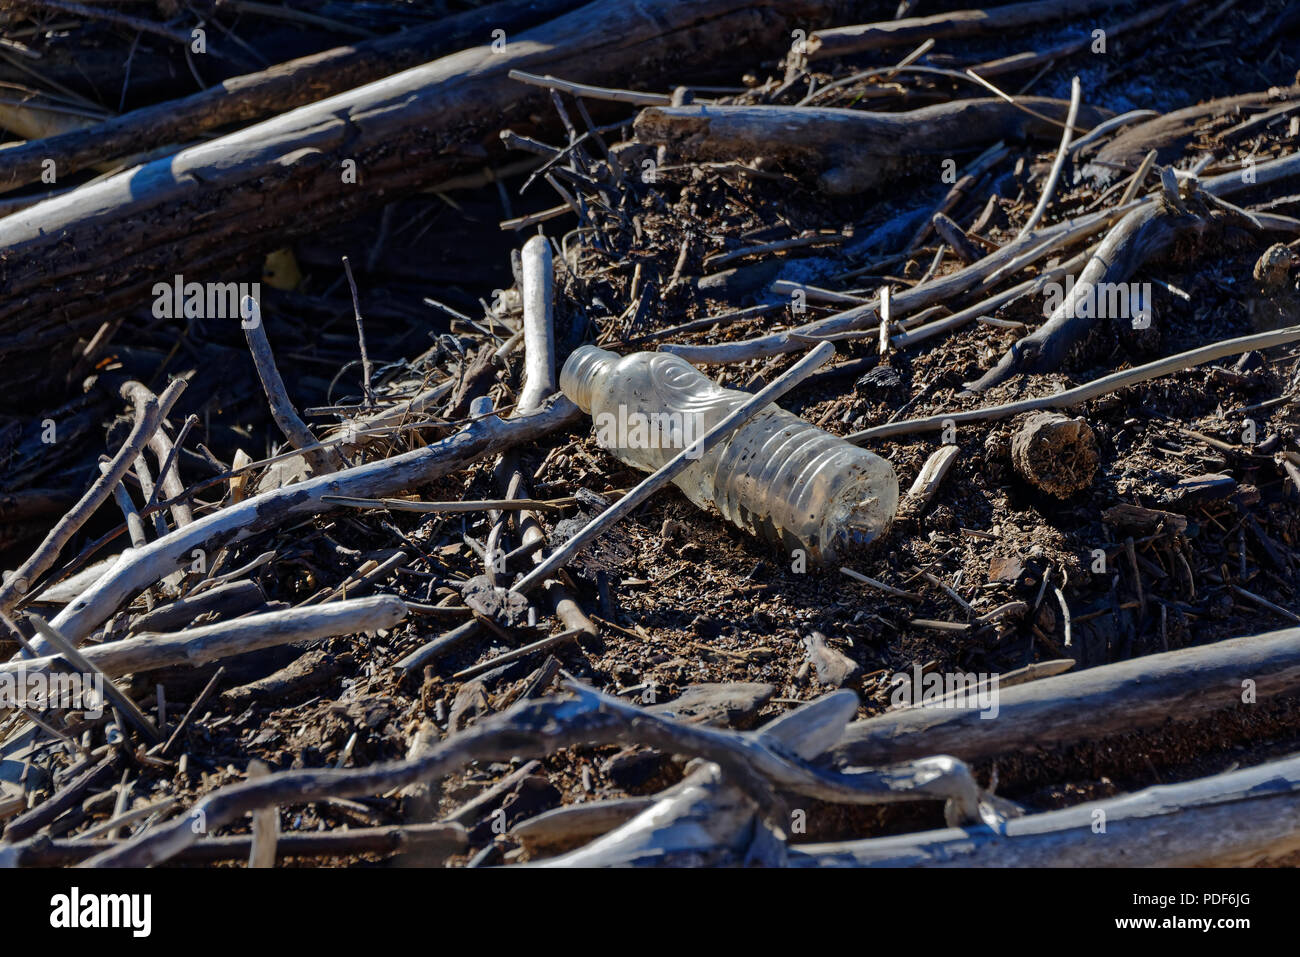 Plastic bottle caught in driftwood on coast of New Zealand.  Plastic rubbish in our oceans is a worldwide environmental problem. - Stock Image